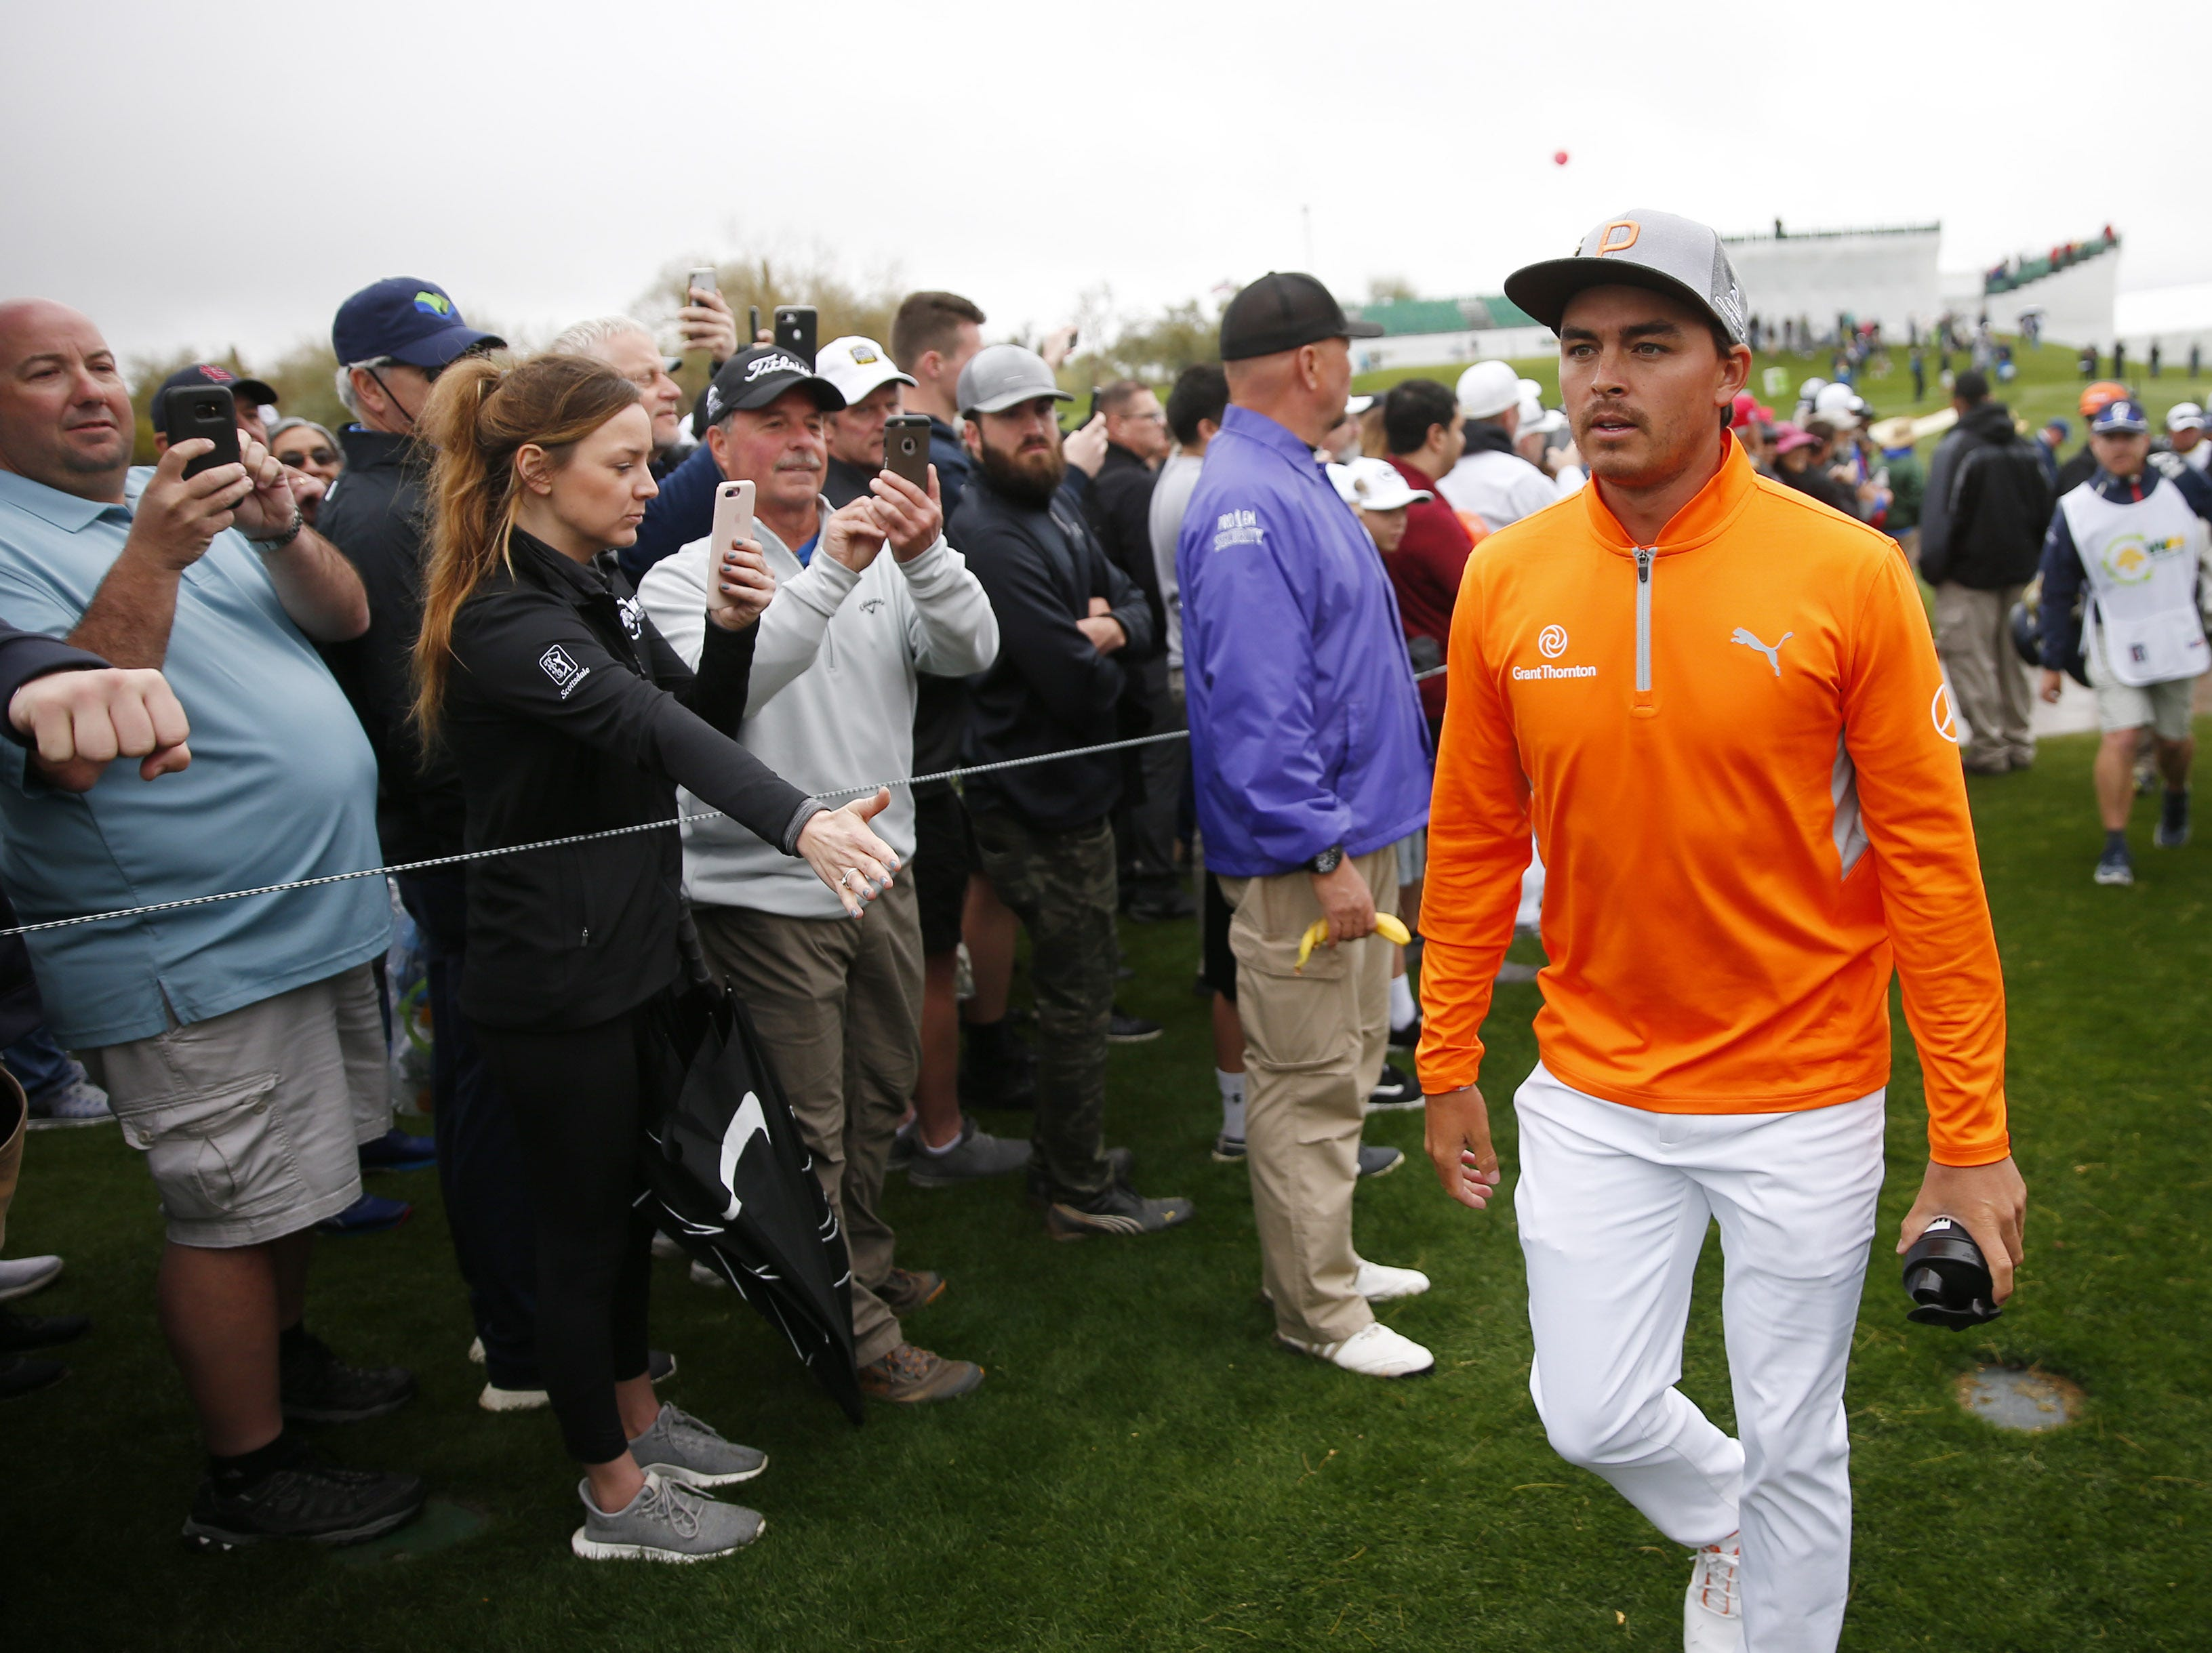 Rickie Fowler walks to the third tee during the final round of the Waste Management Phoenix Open at the TPC Scottsdale Feb. 3, 2019.